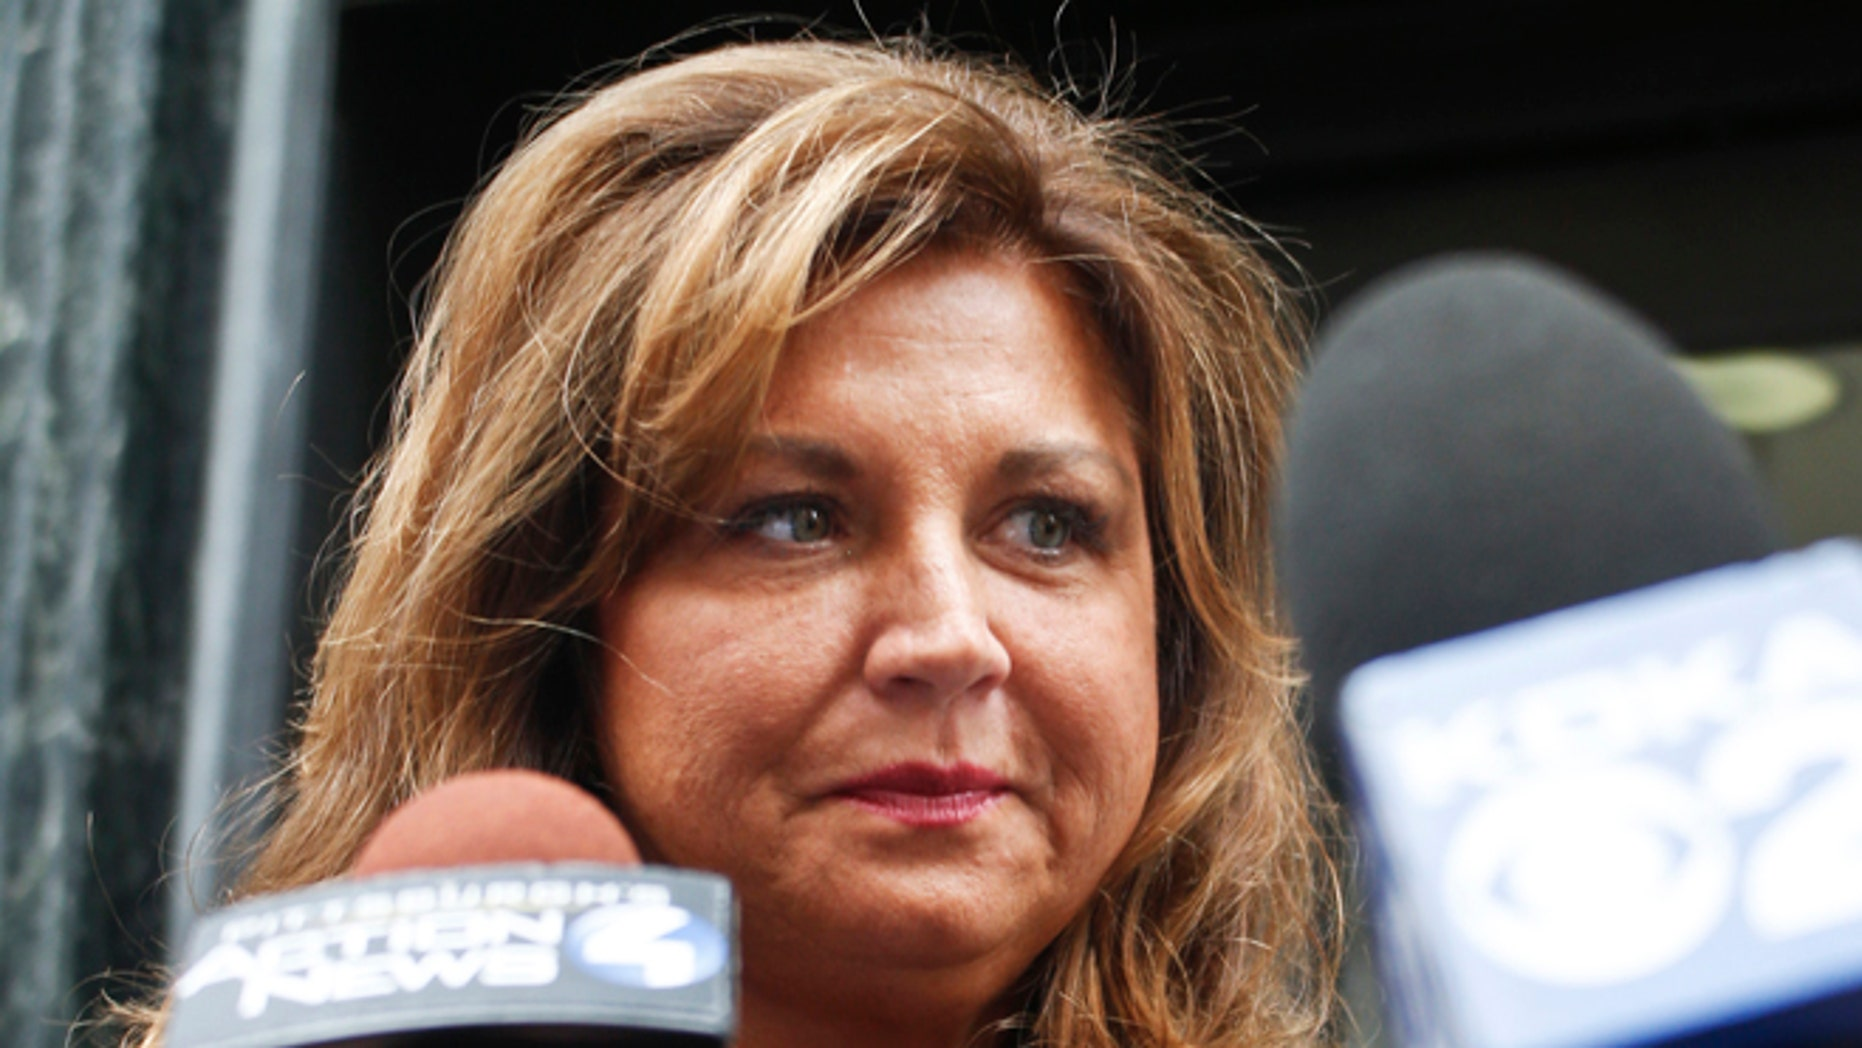 """""""Dance Moms"""" star Abby Lee Miller is continuing treatment for her battle with Lymphoma. The reality star recently underwent an 'emergency surgery' as part of the process."""